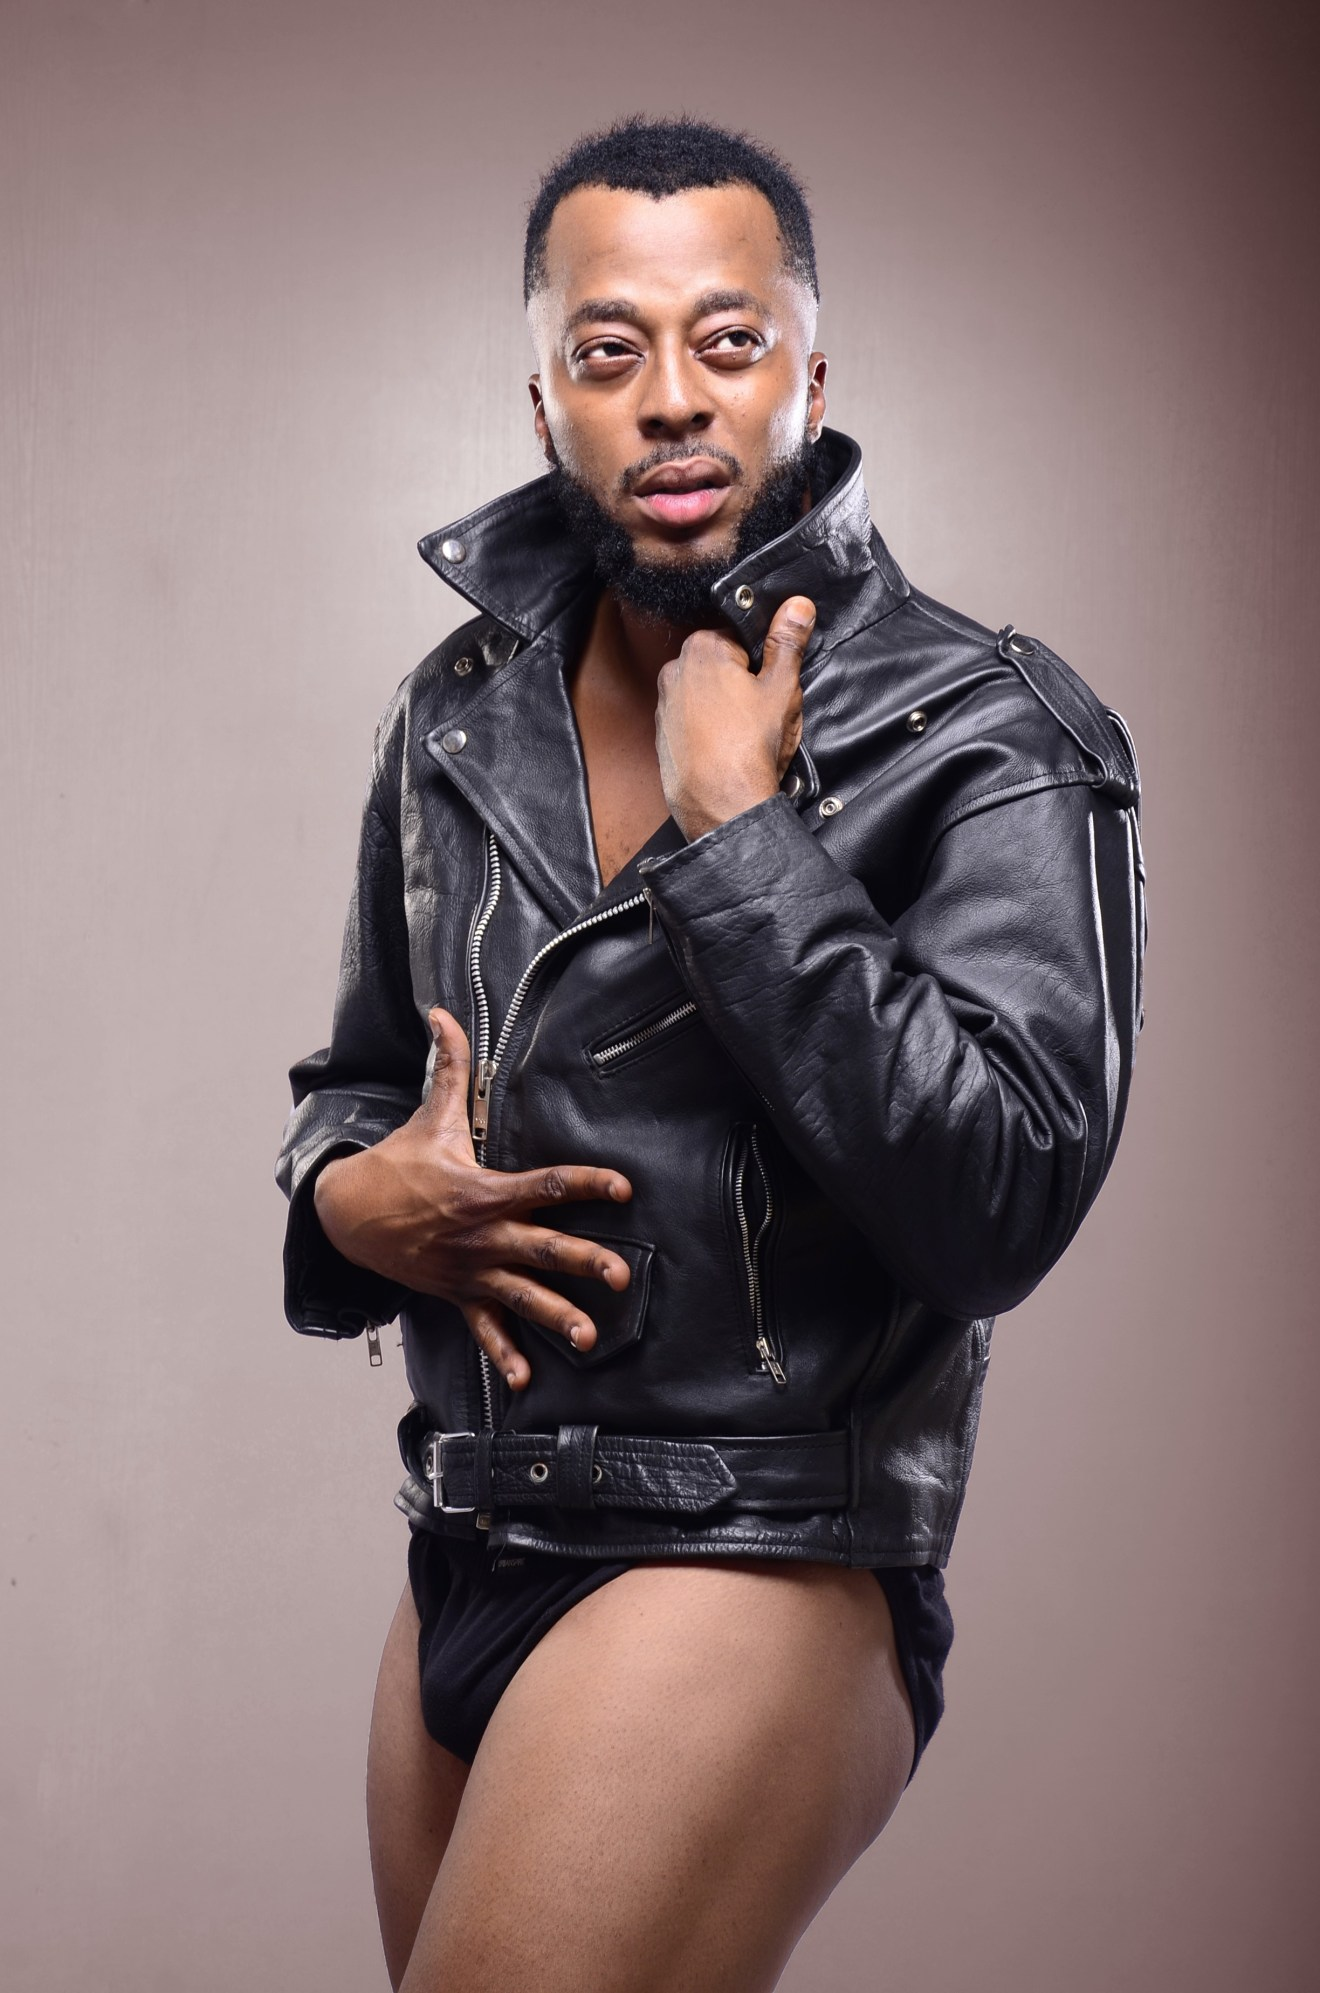 Nollywood Actor Benson Okonkwo shares semi-nude photos